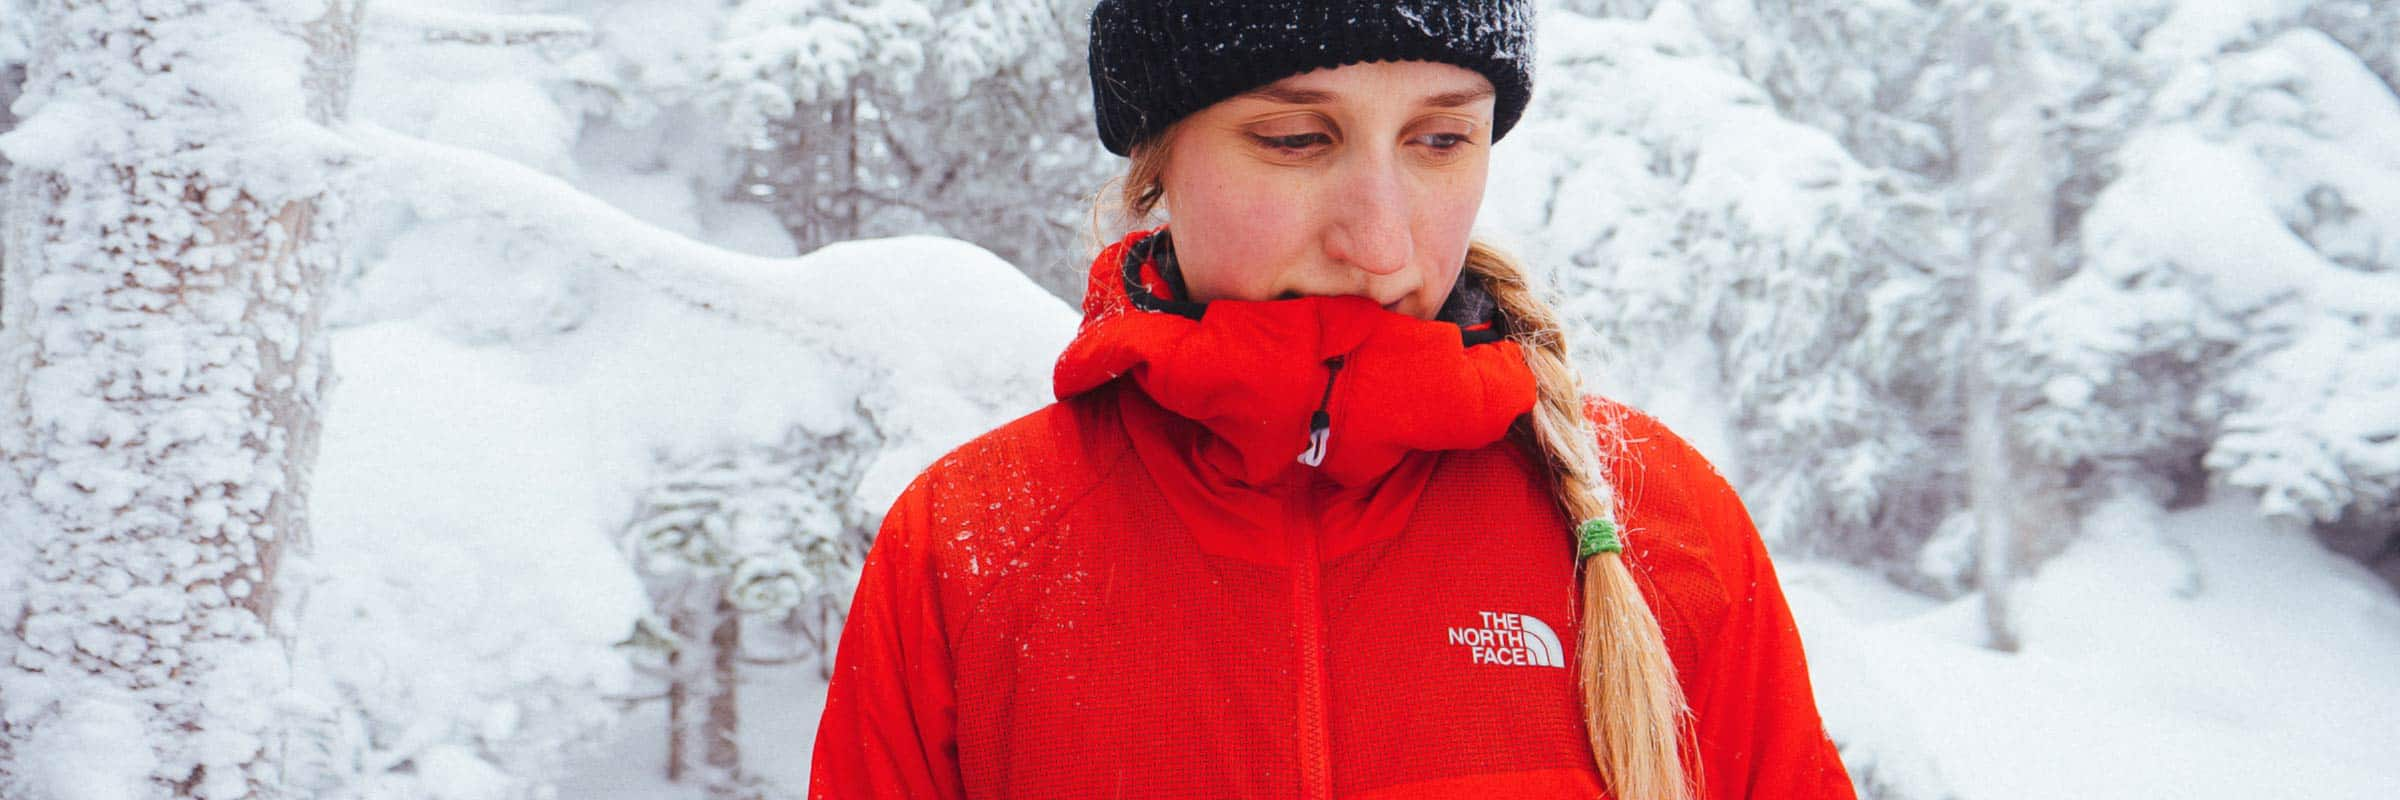 The North Face. The North Face Women's Summit L3 Ventrix Hoodie Reviewed